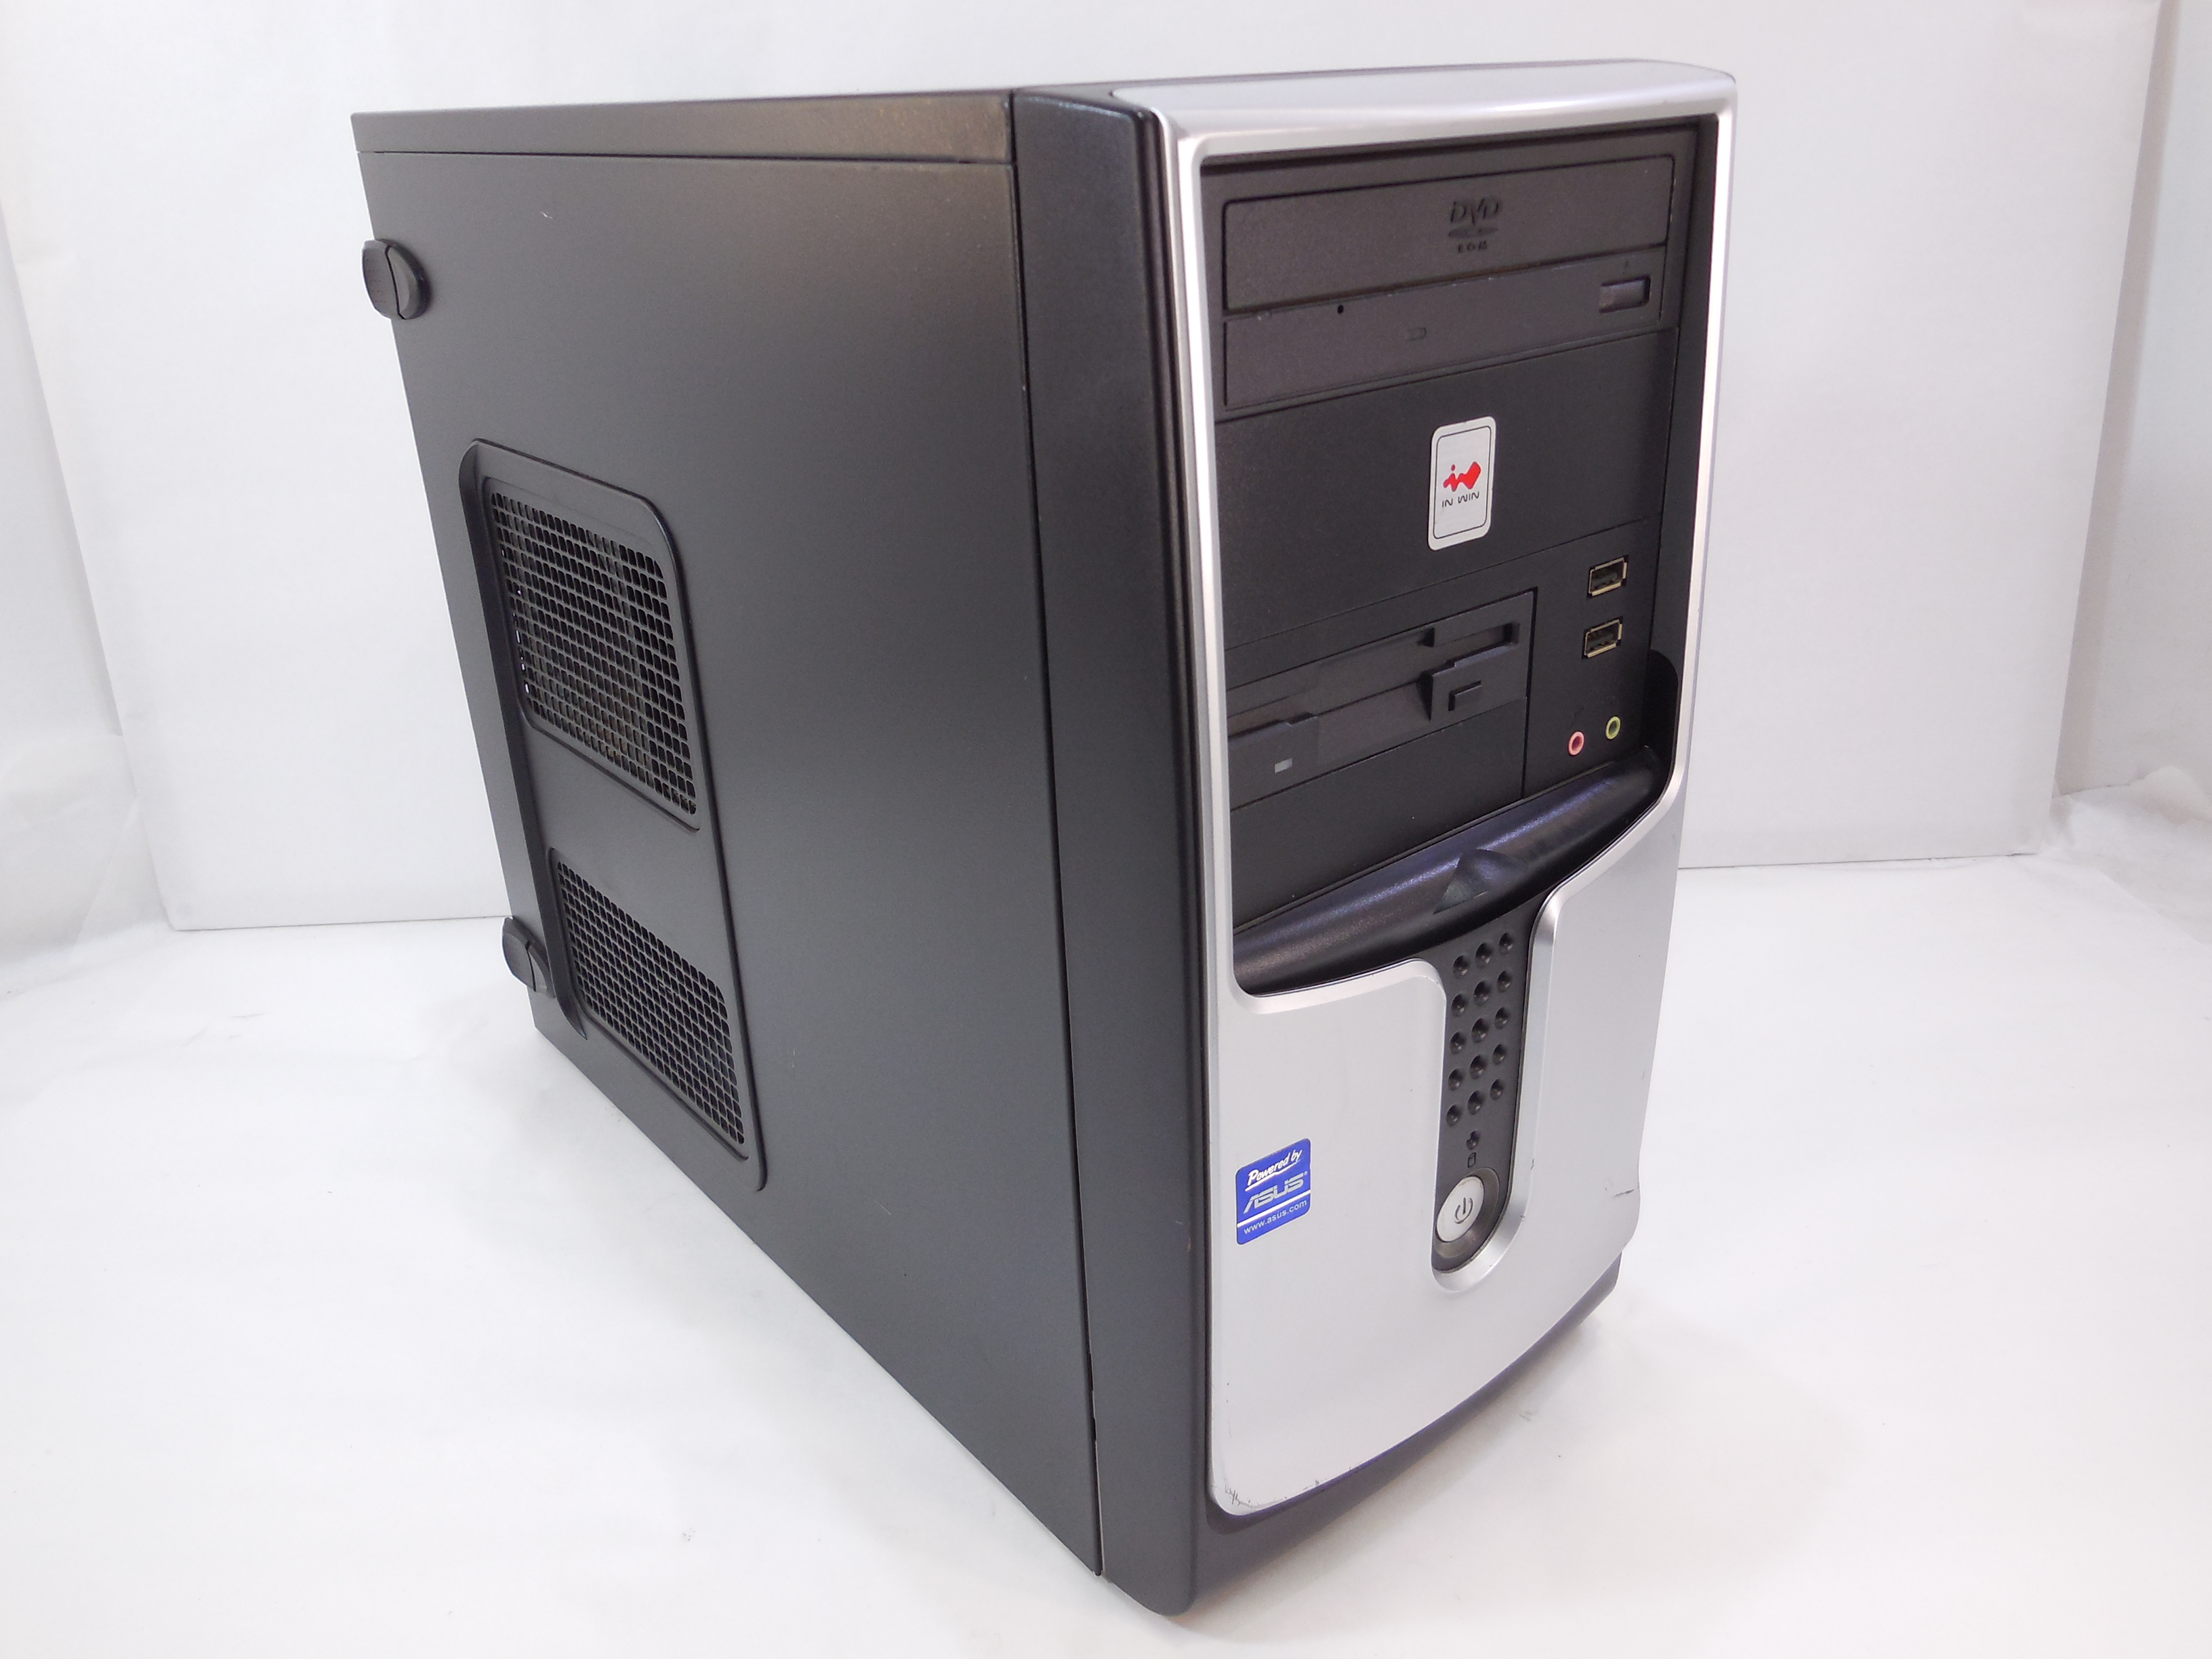 Комп. Intel Core 2 Duo E6420 (2.13GHz) - Pic n 283089